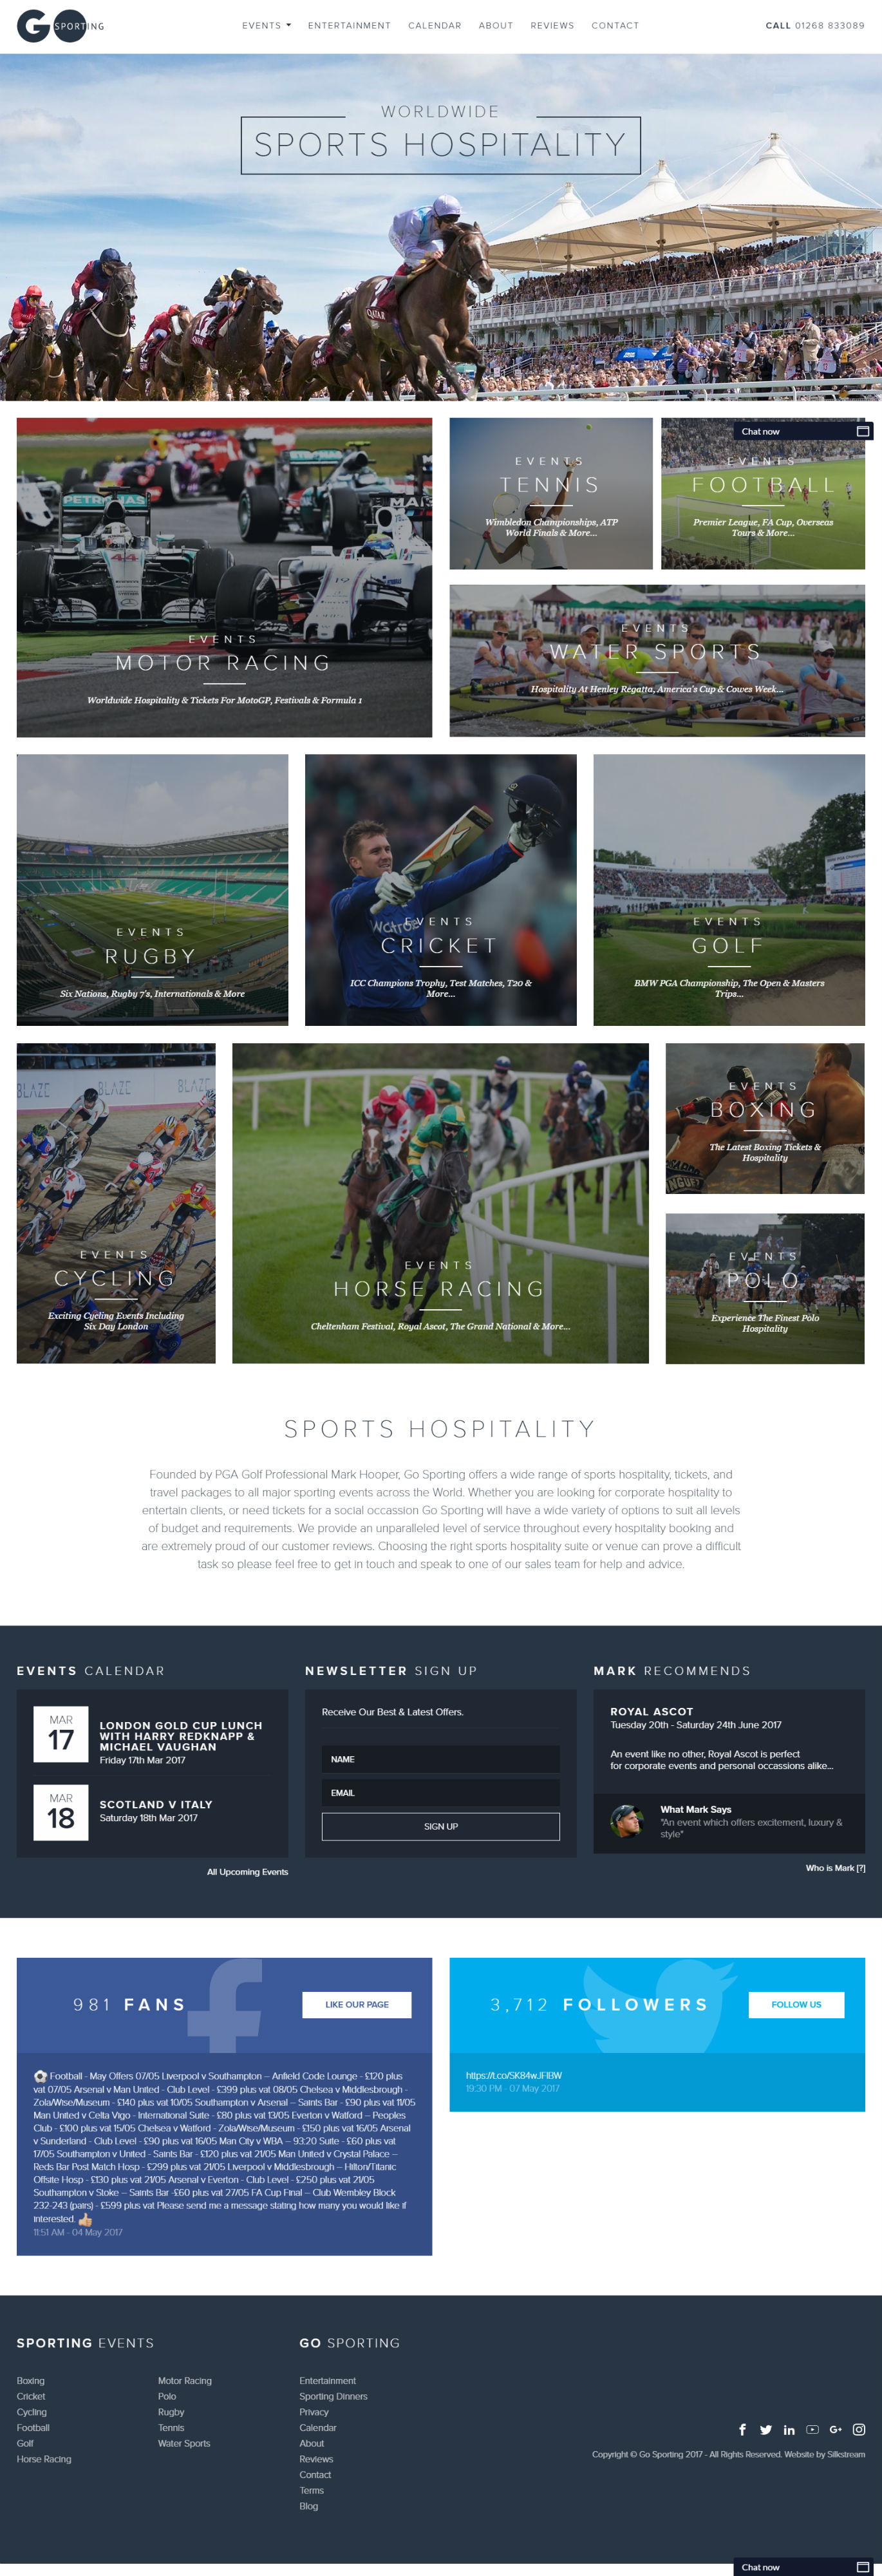 Go Sporting Homepage